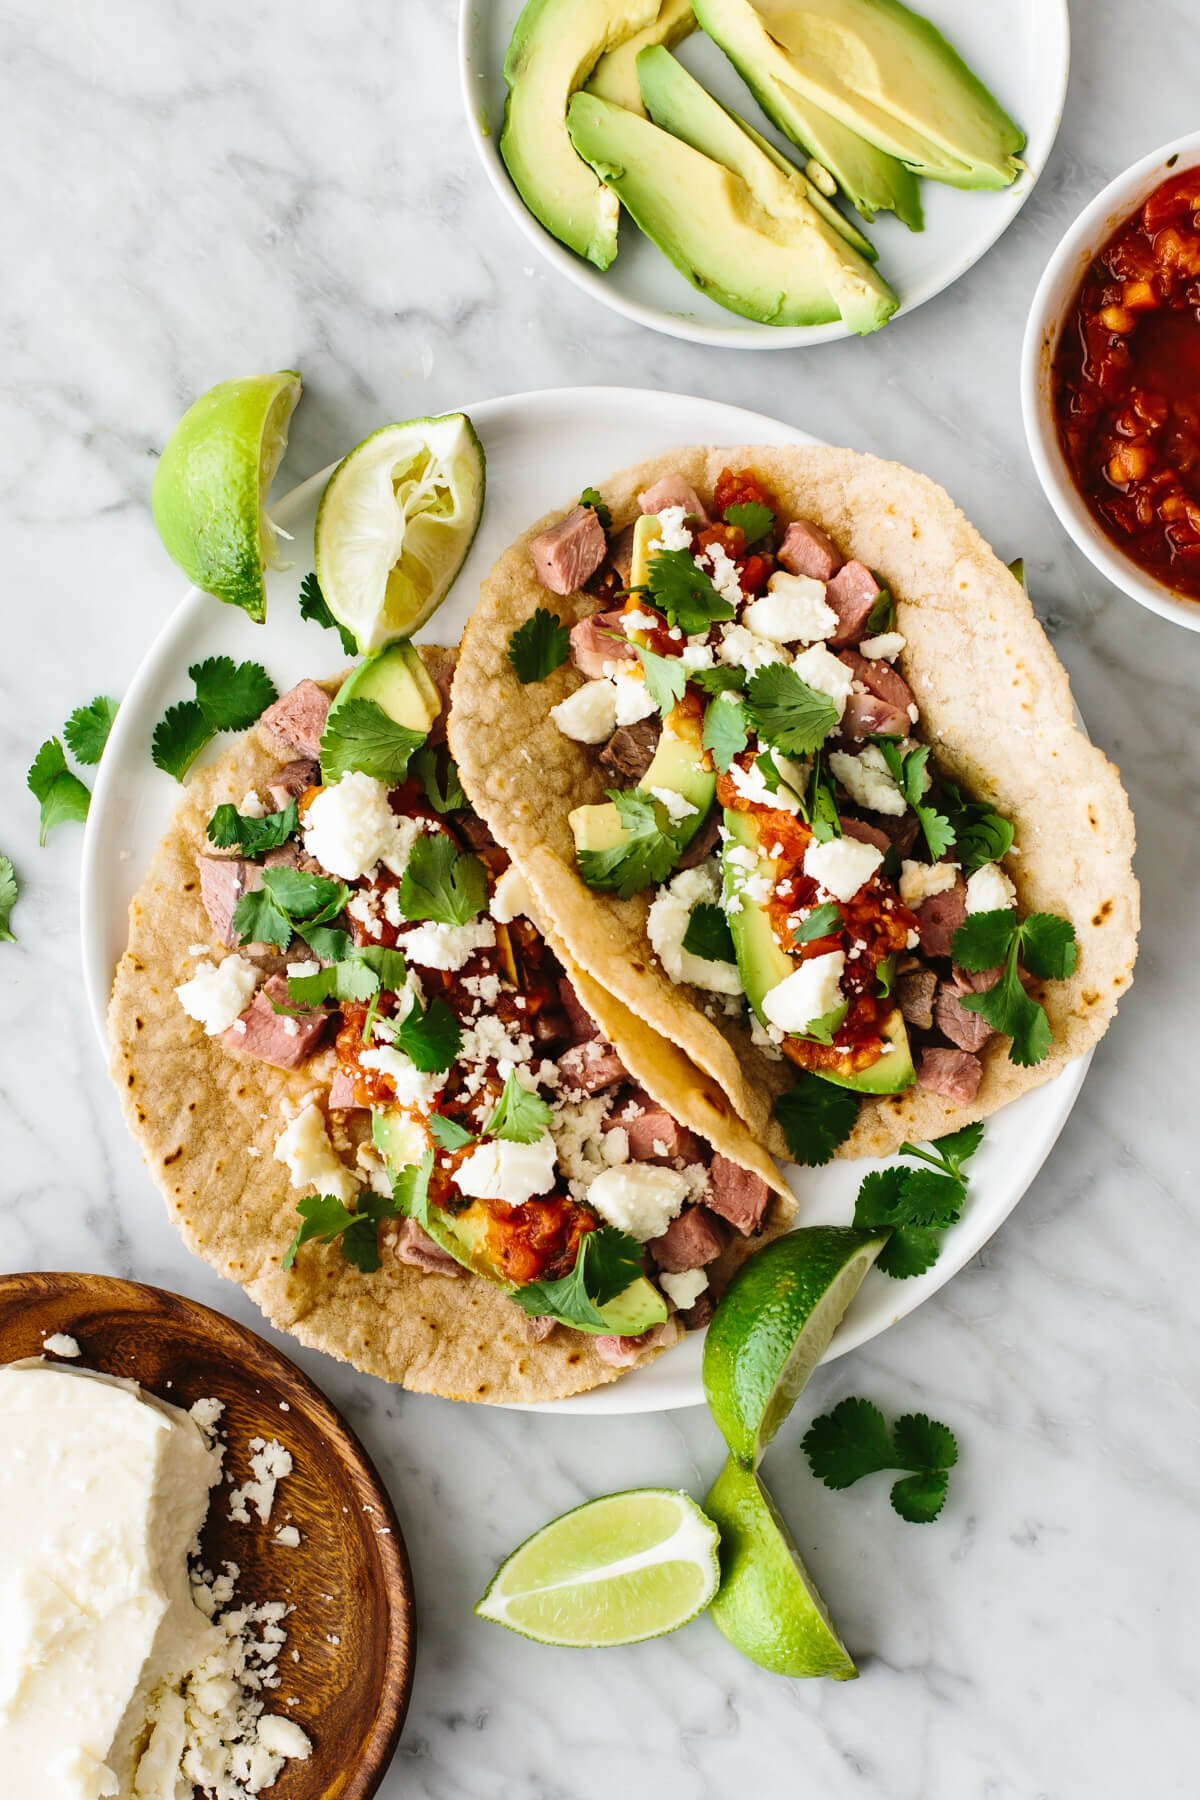 Two prime rib tacos on a plate.